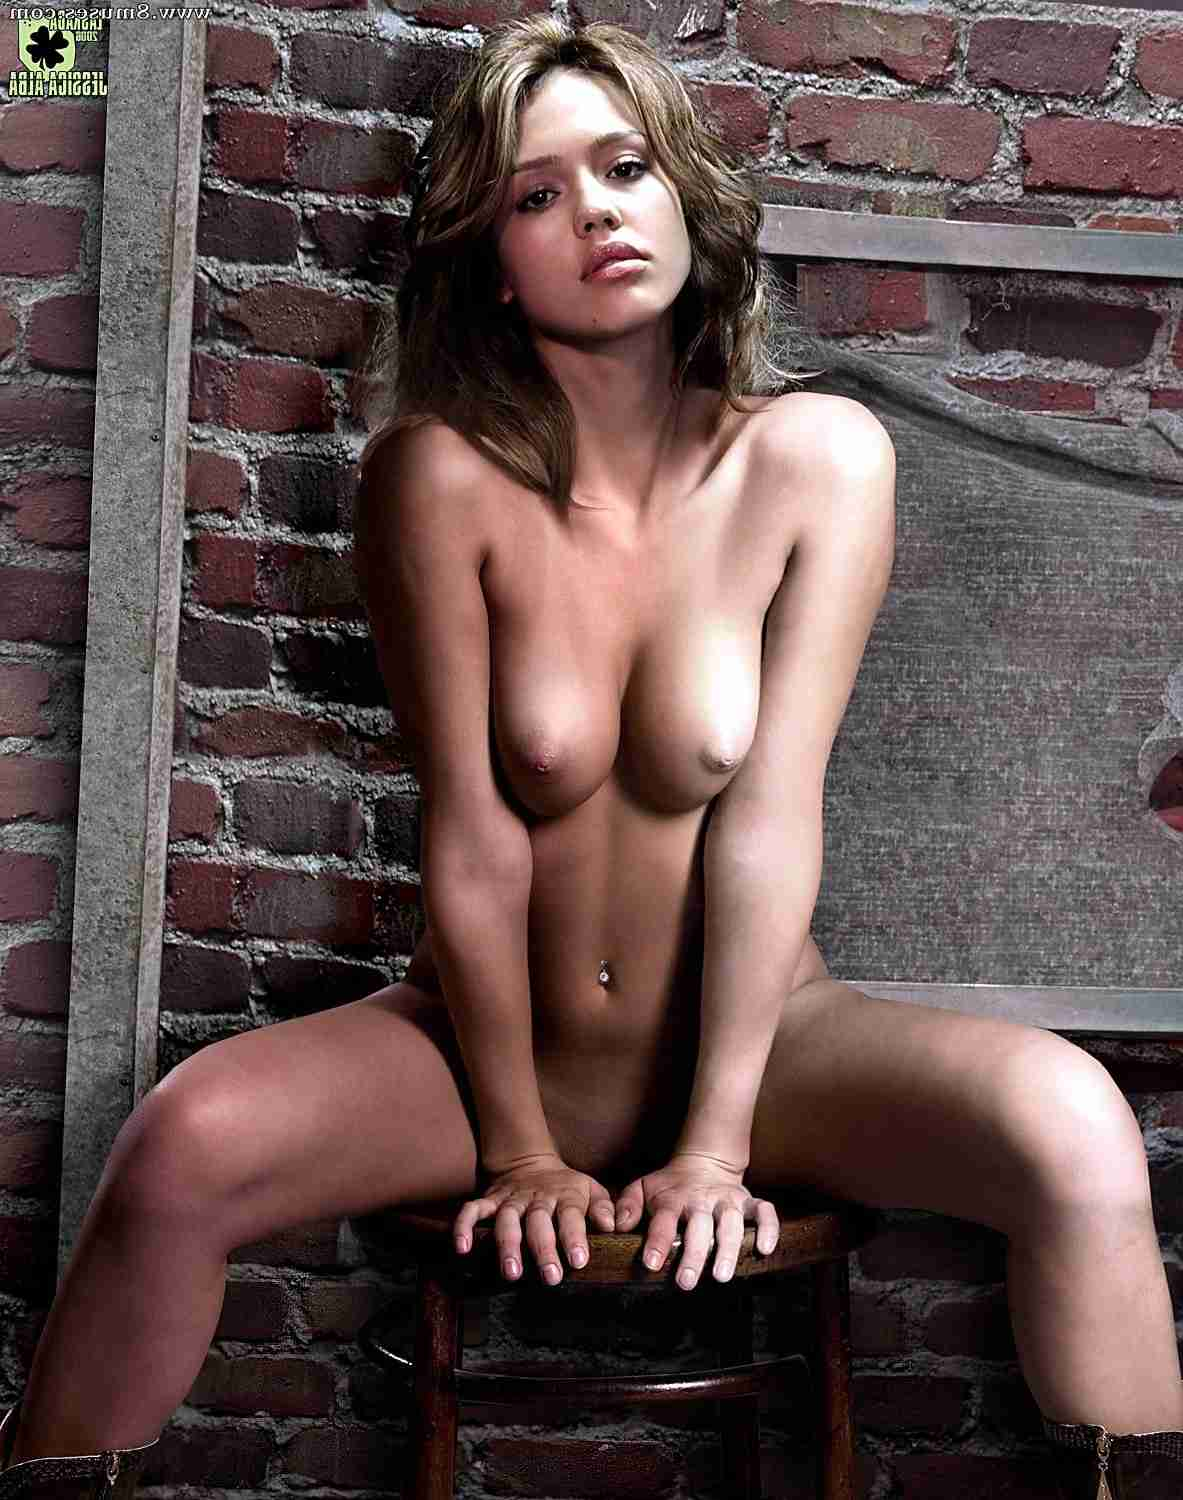 Fake-Celebrities-Sex-Pictures/Jessica-Alba Jessica_Alba__8muses_-_Sex_and_Porn_Comics_432.jpg